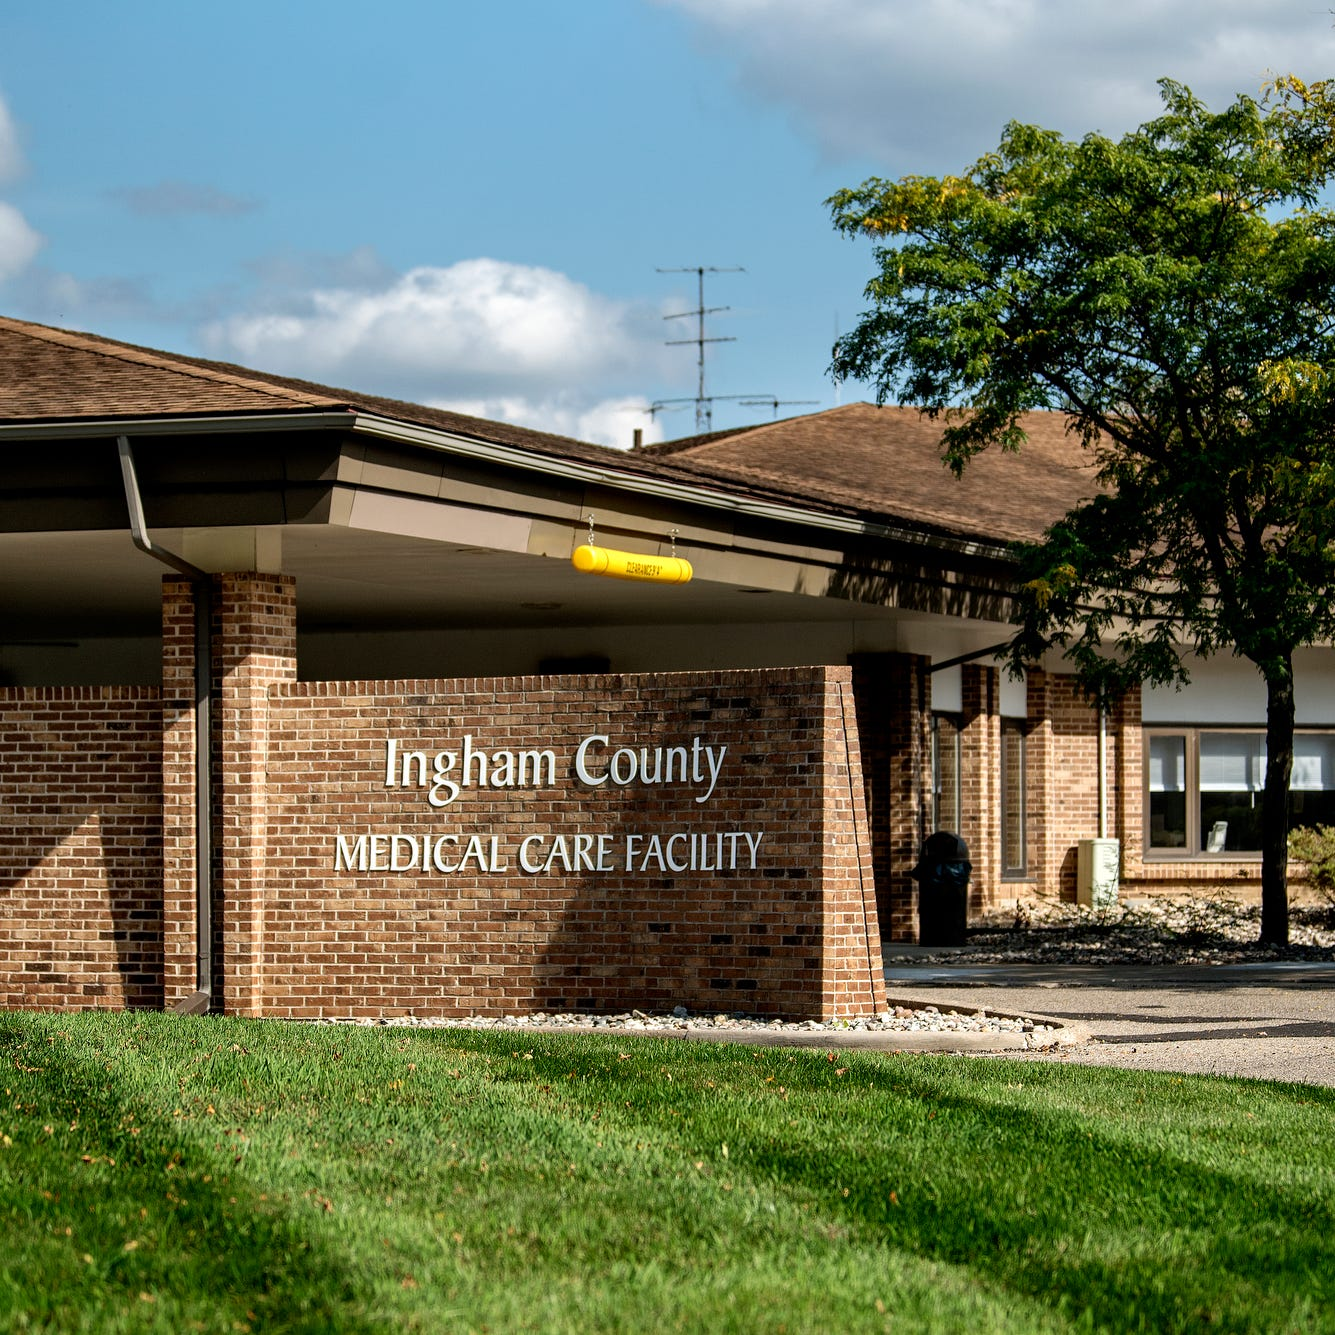 Permit trouble with East Lansing stalls Ingham County nursing home construction project